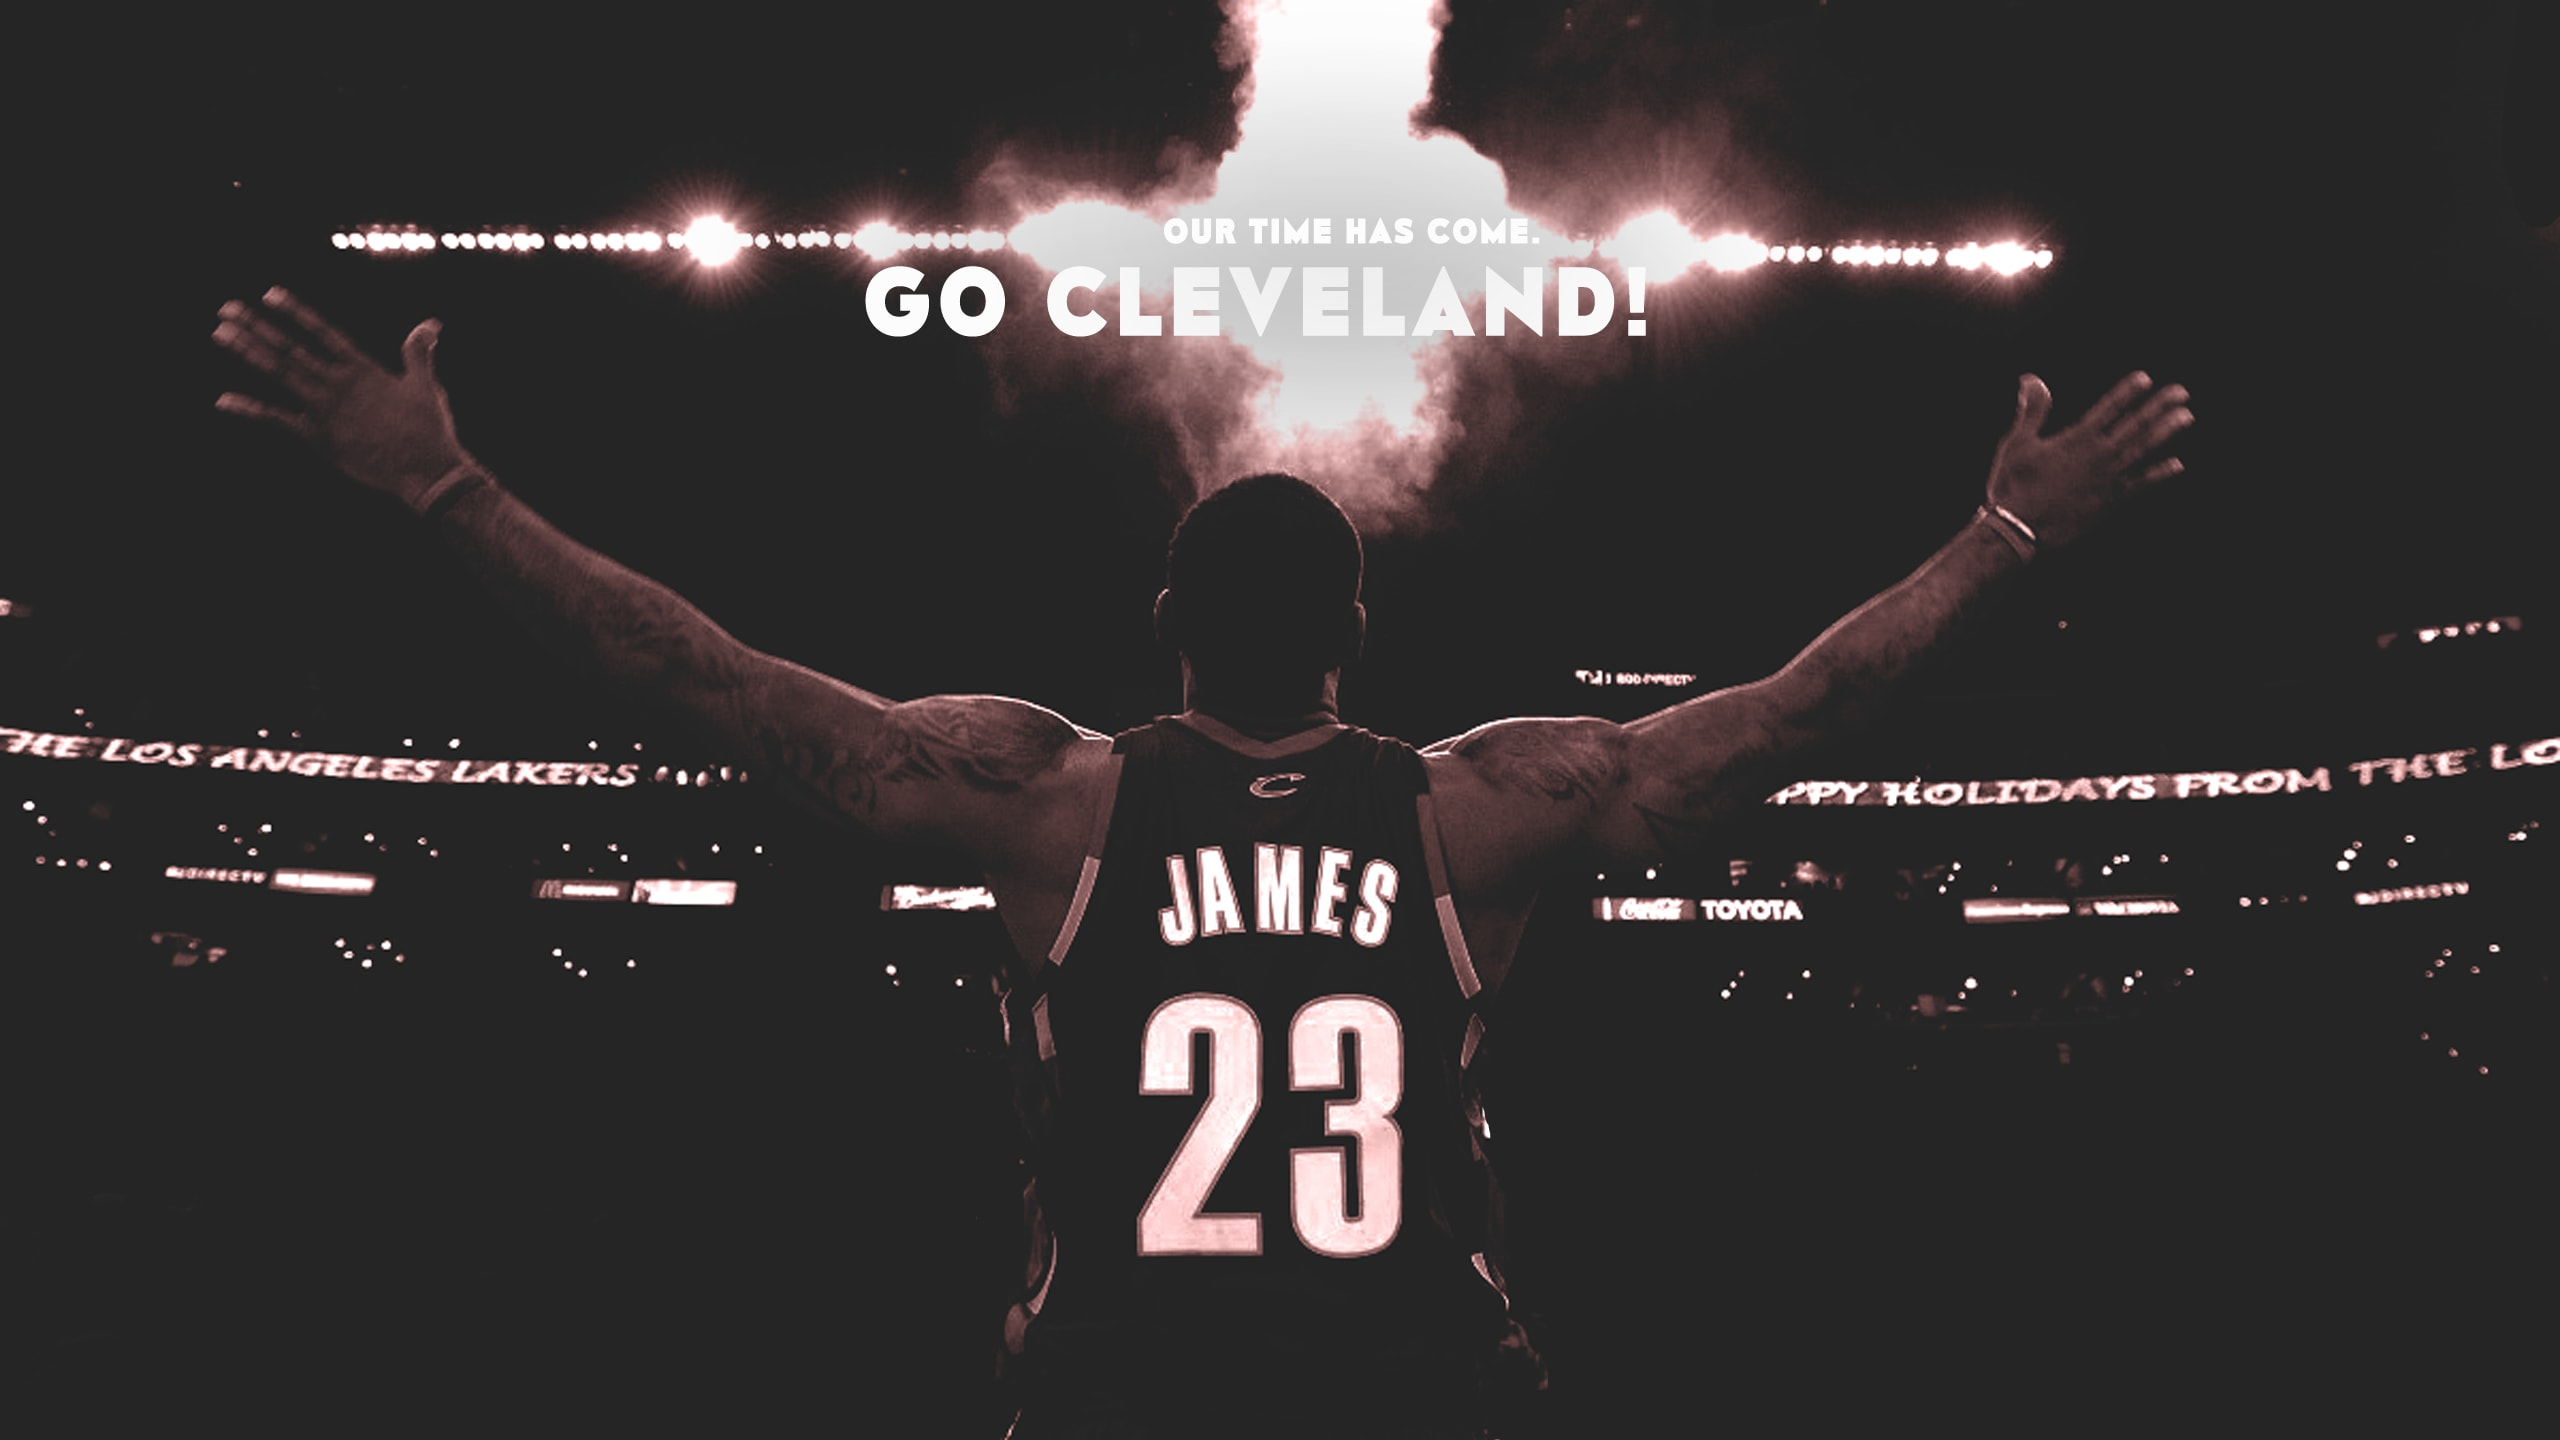 King Falls Am Wallpaper Fan Wallpapers Cleveland Cavaliers